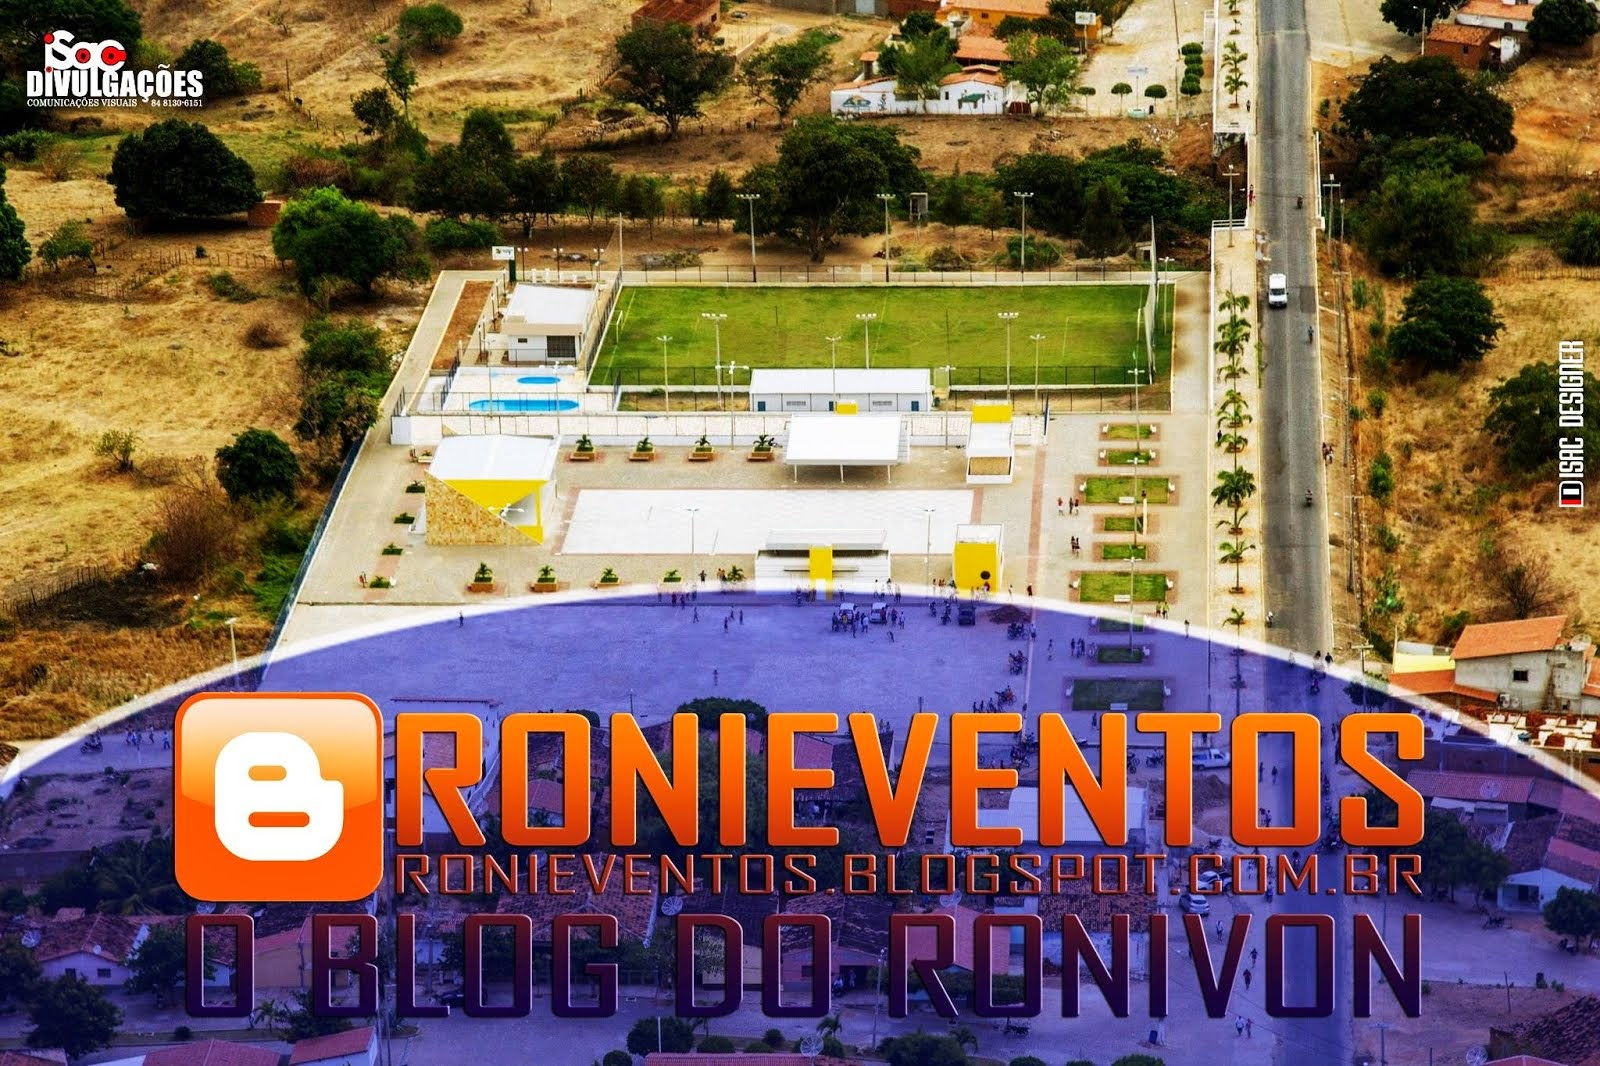 RONIEVENTOS - O Blog do Ronivon.